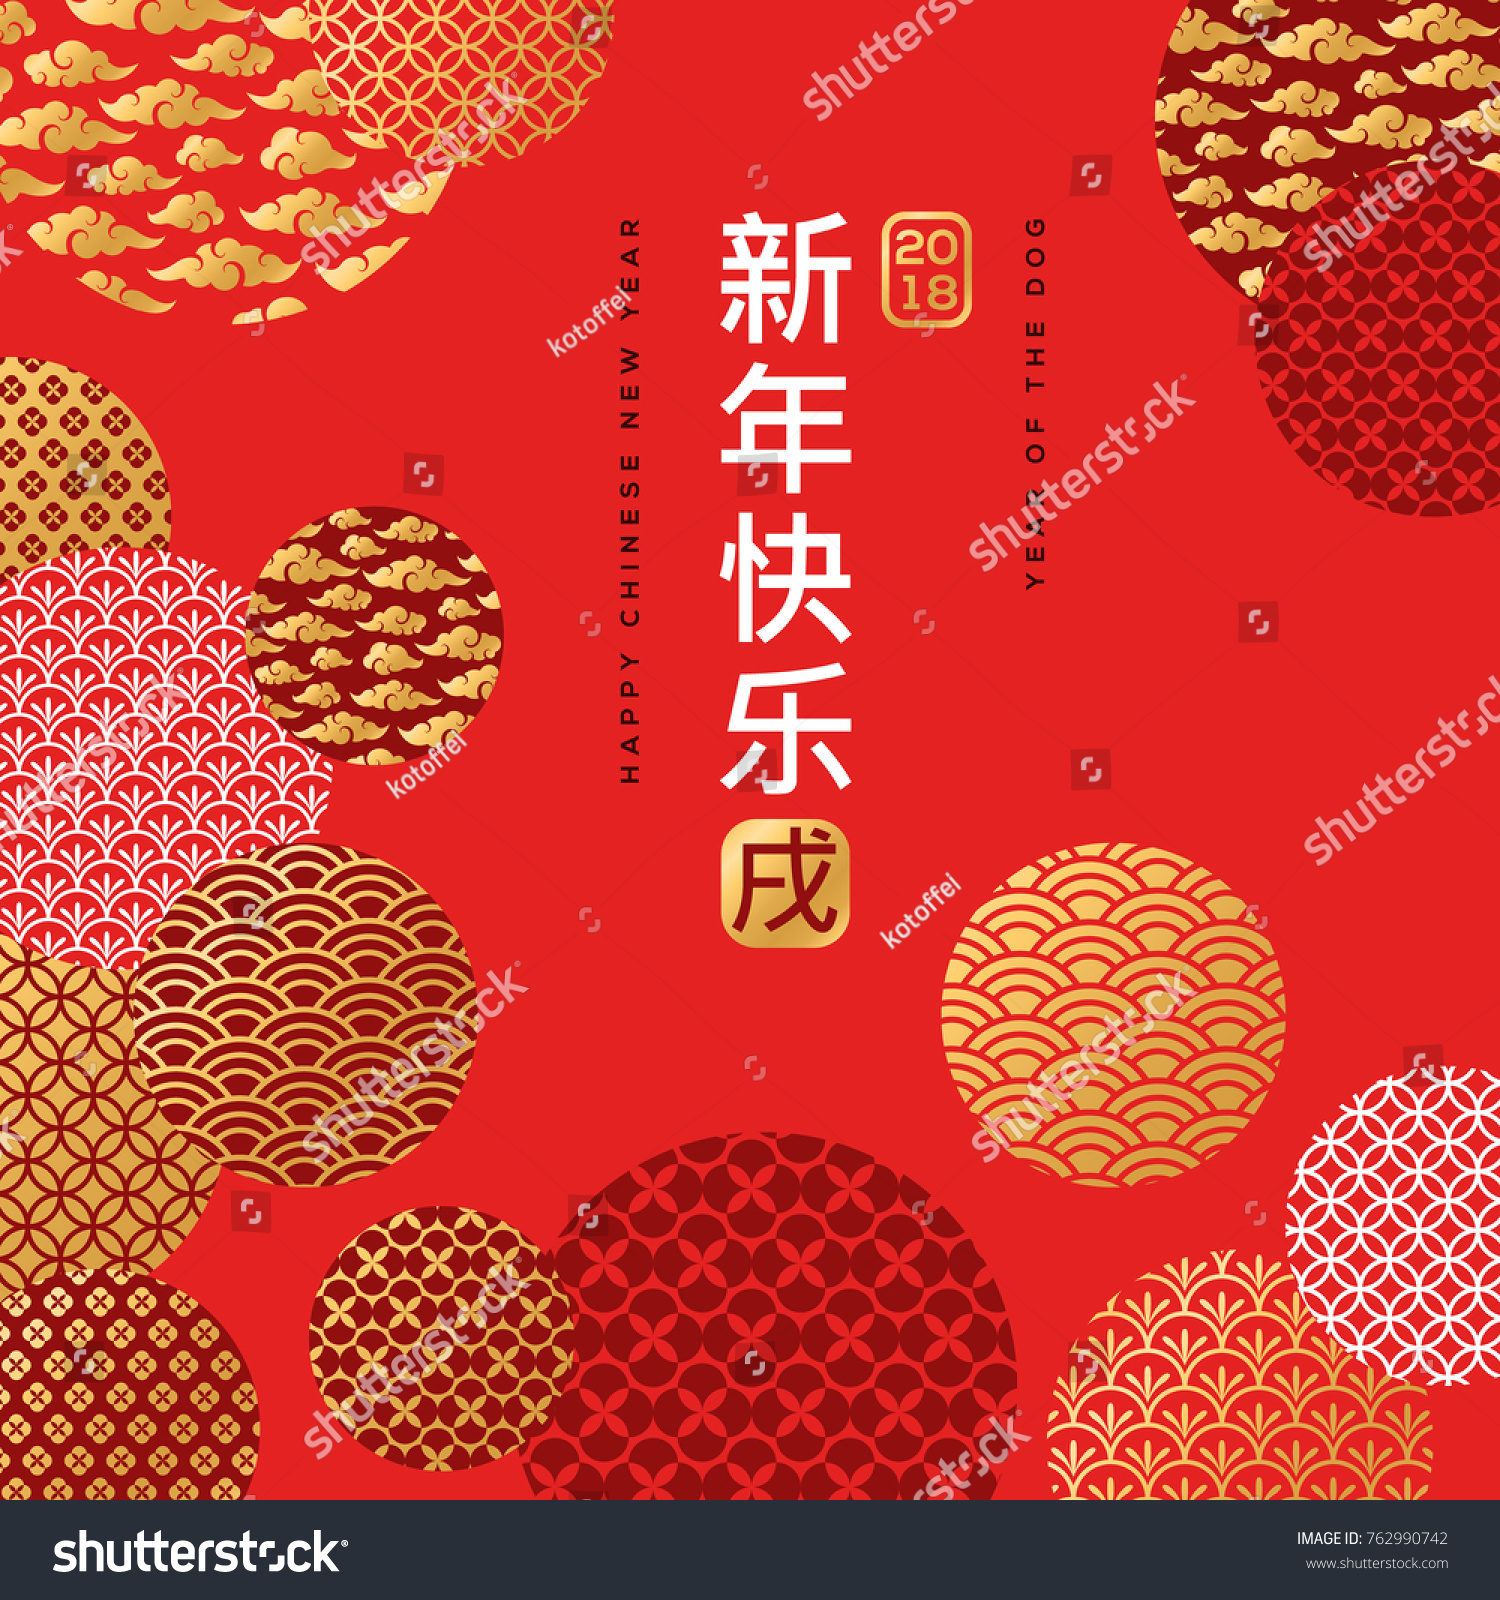 2018 chinese greeting card with geometric ornate shapes or red background vertical hieroglyphs translation